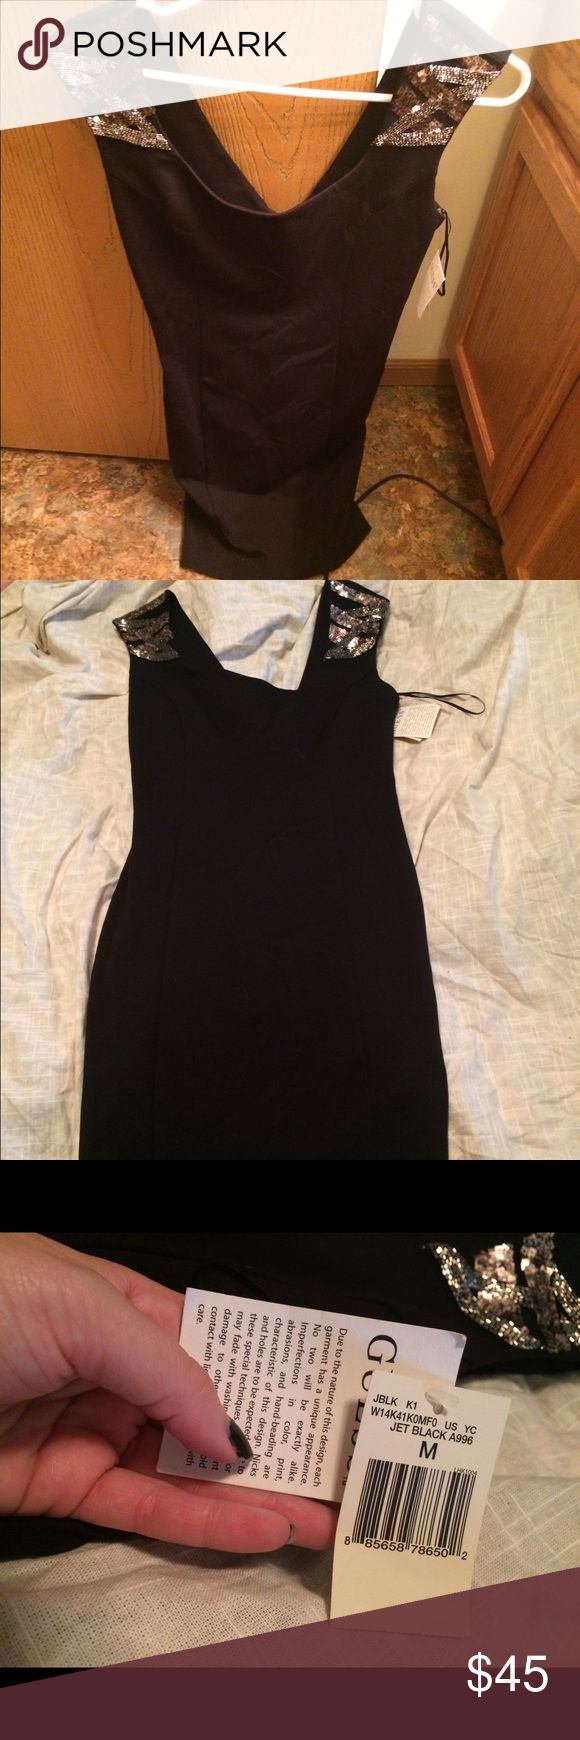 Black Guess dress NWT Brand new. Body forming dress - size medium. Sequined patches on shoulder! Beautiful. Guess Dresses Mini